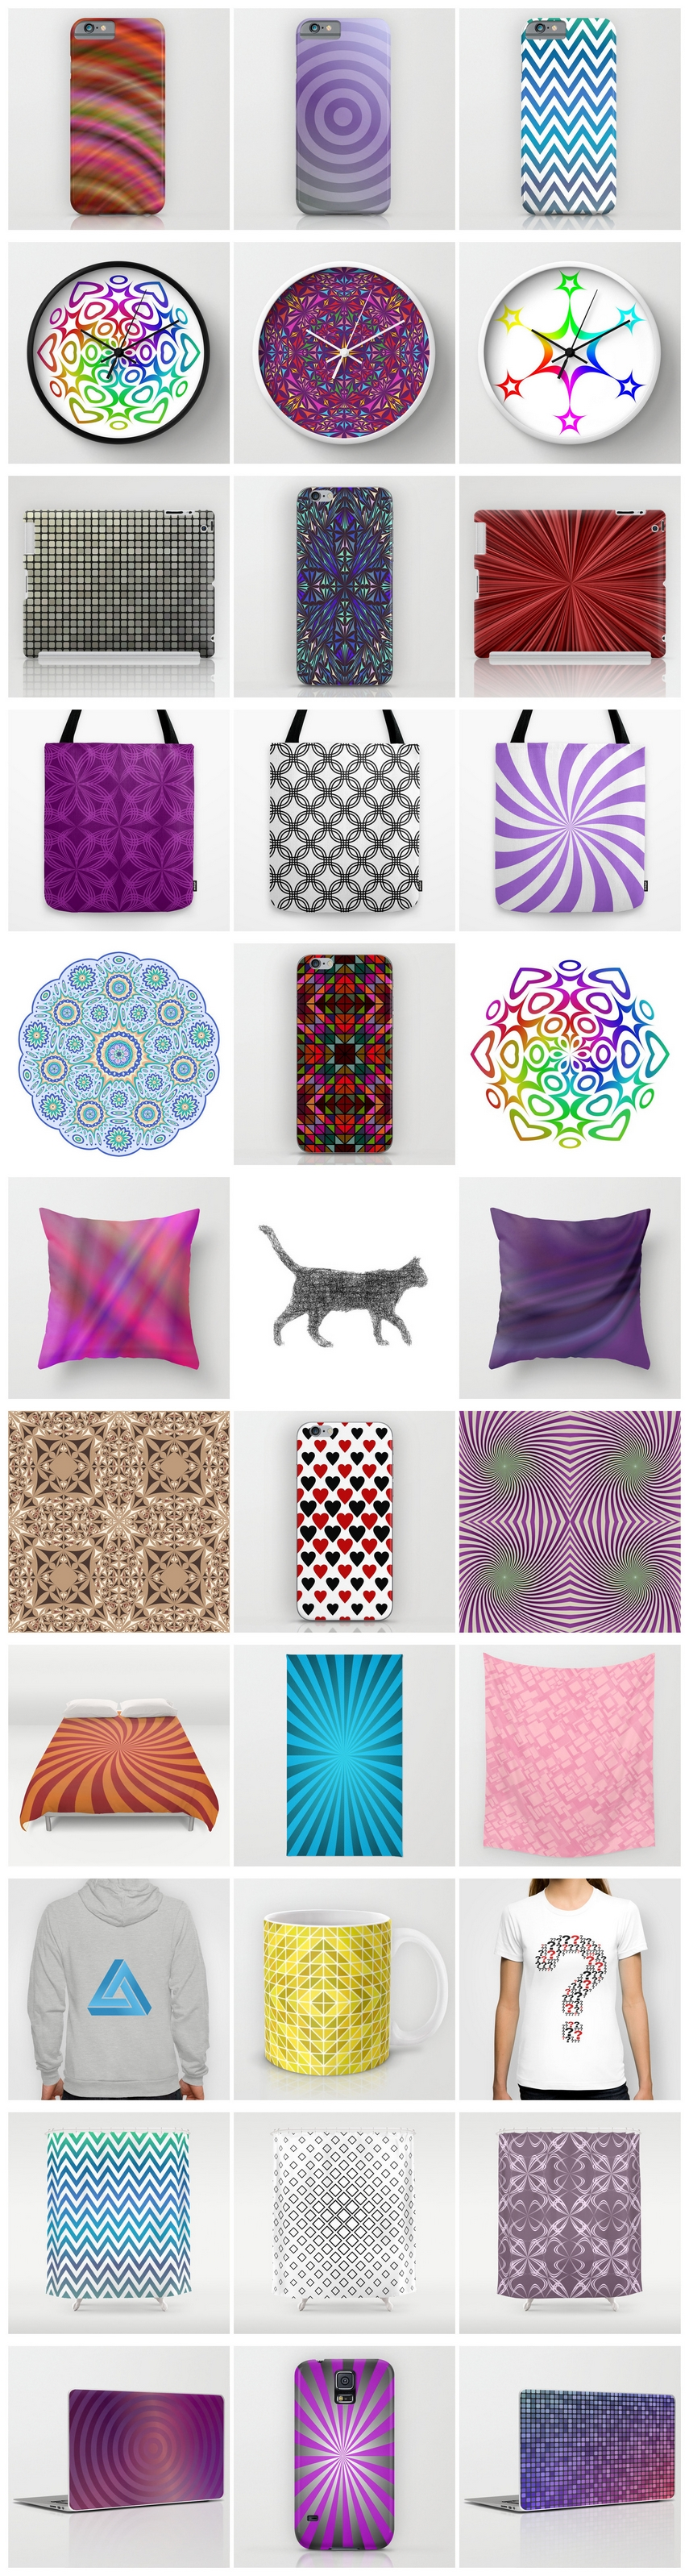 Throw pillows cards mugs shower curtains - Art Prints Stationery Cards Iphone Ipod Ipad Samsung Cases Mobile Phone Skins Laptop Skins T Shirts Tank Tops Hoodies Throw Pillows Tote Bags